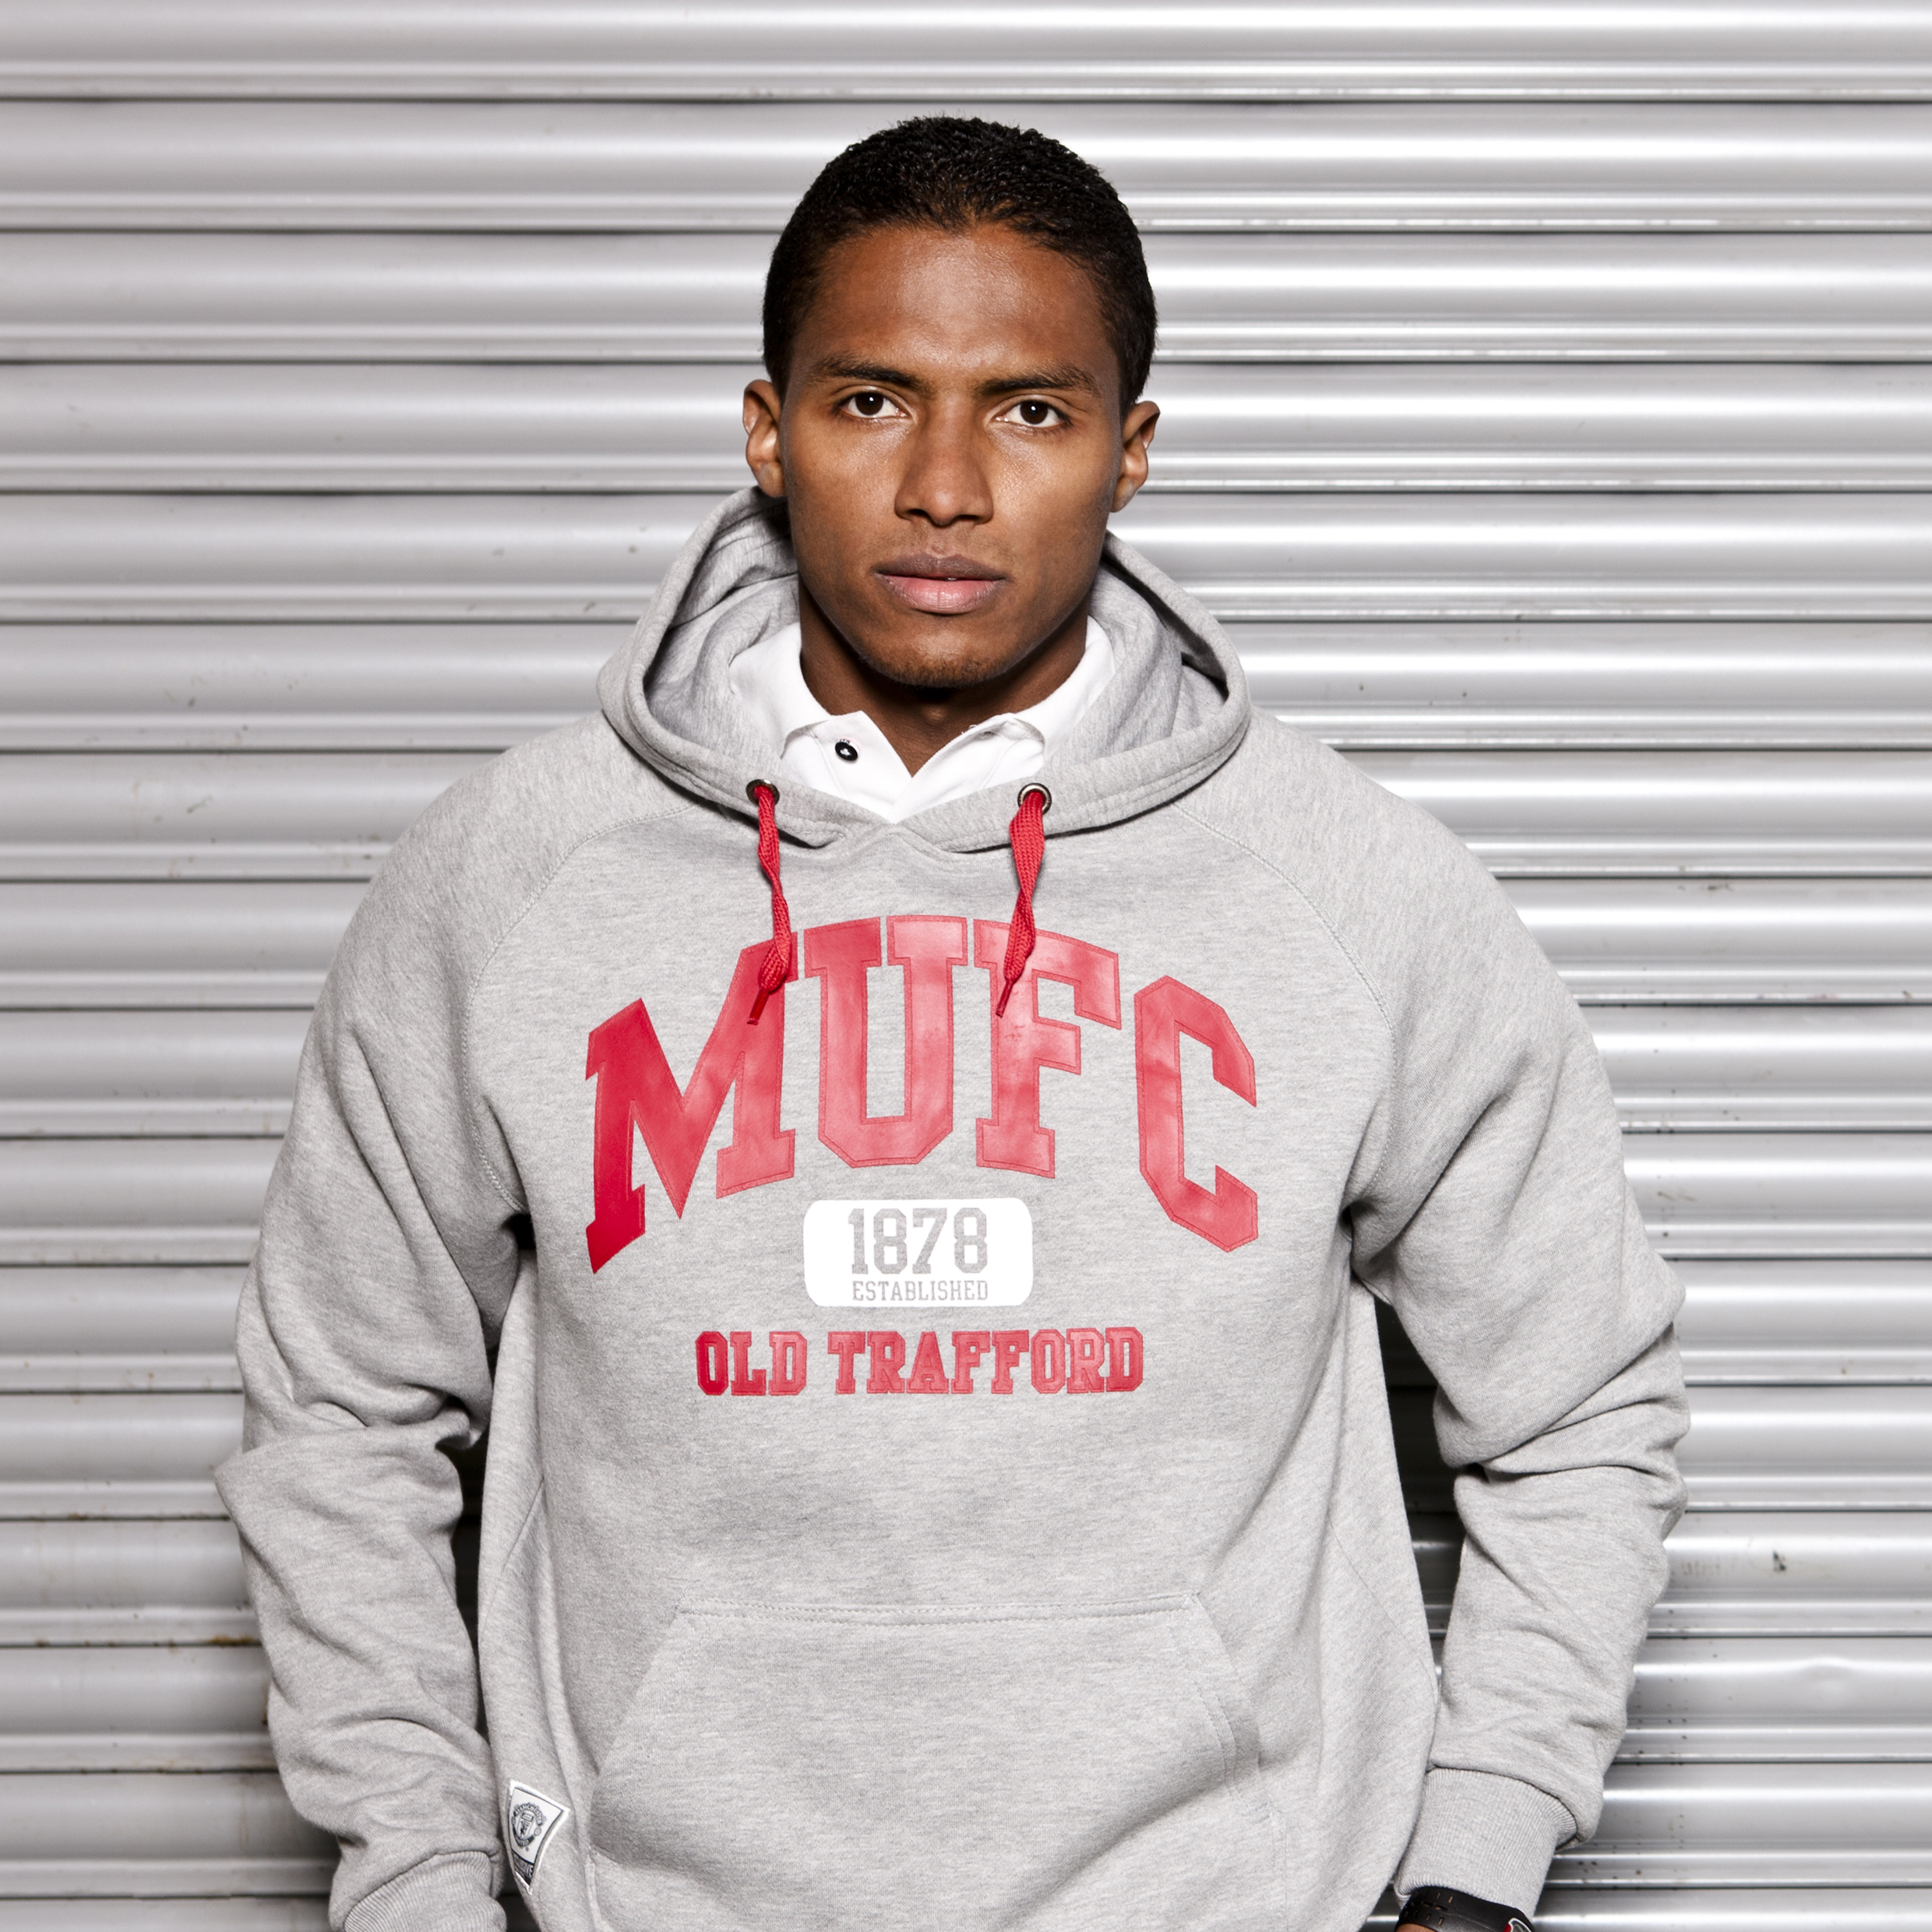 Manchester United Classic Collegiate Graphic Hoody - Grey Marl - Mens